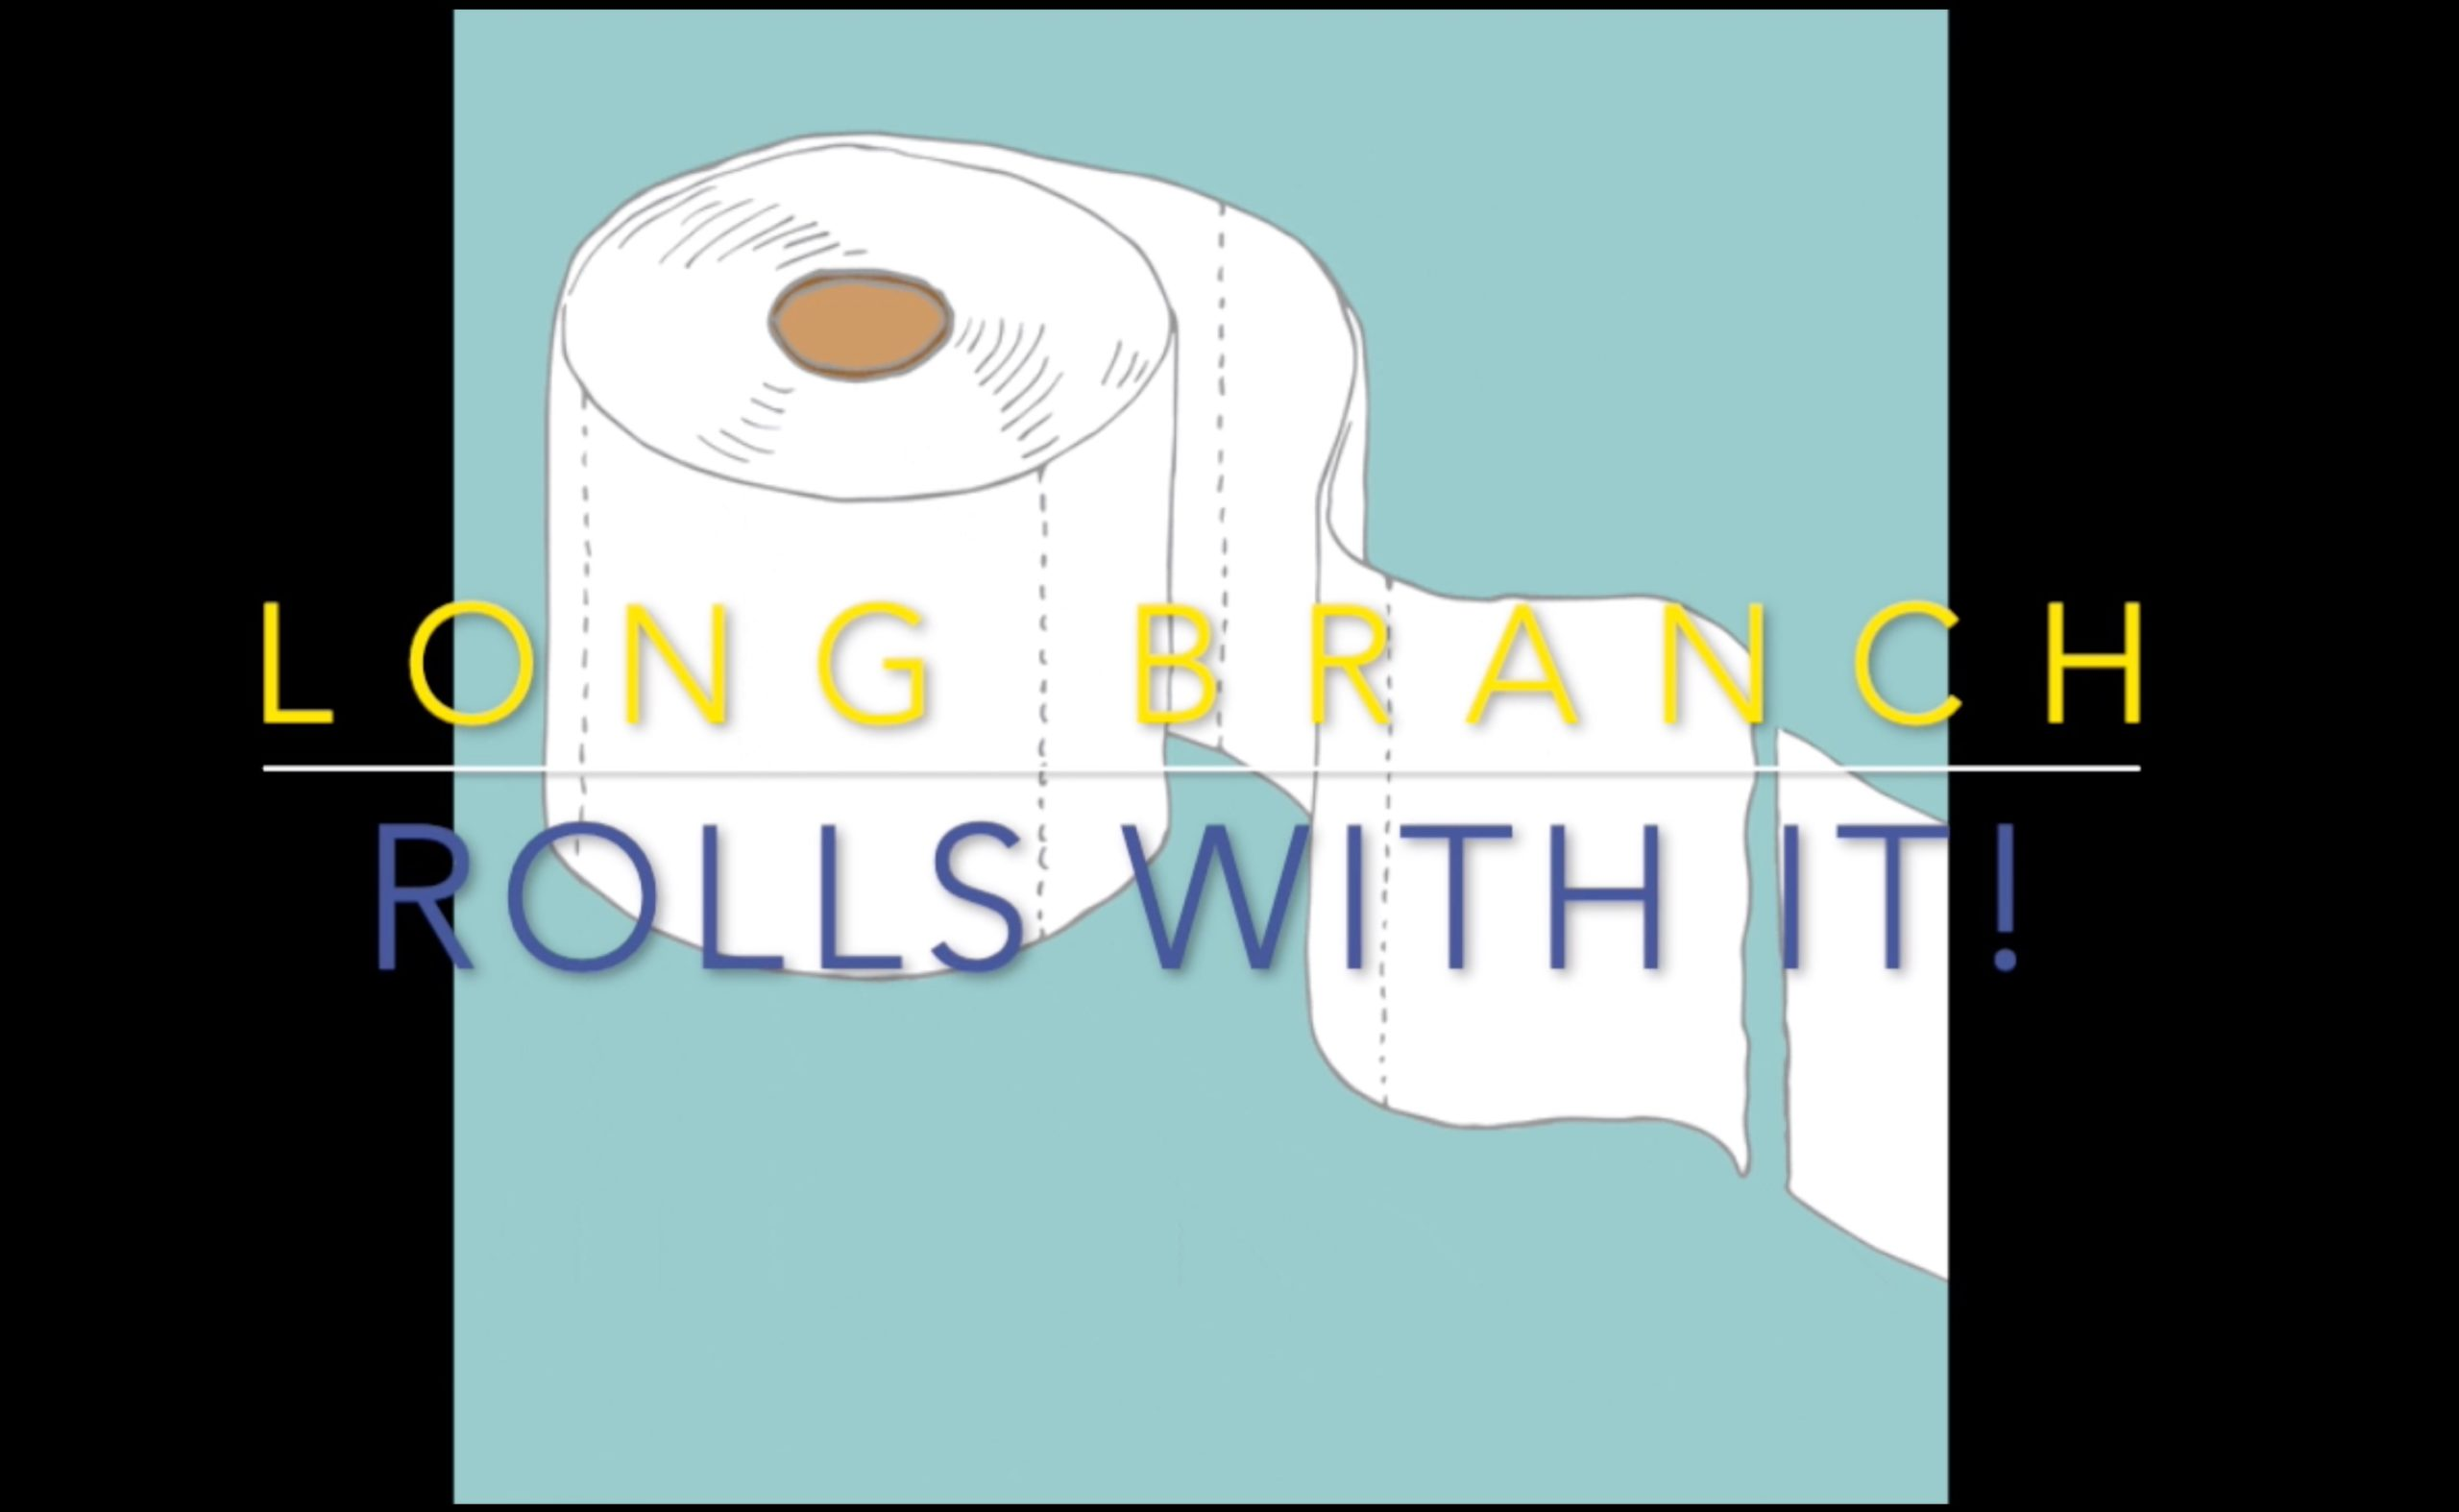 Long Branch Rolls with It!